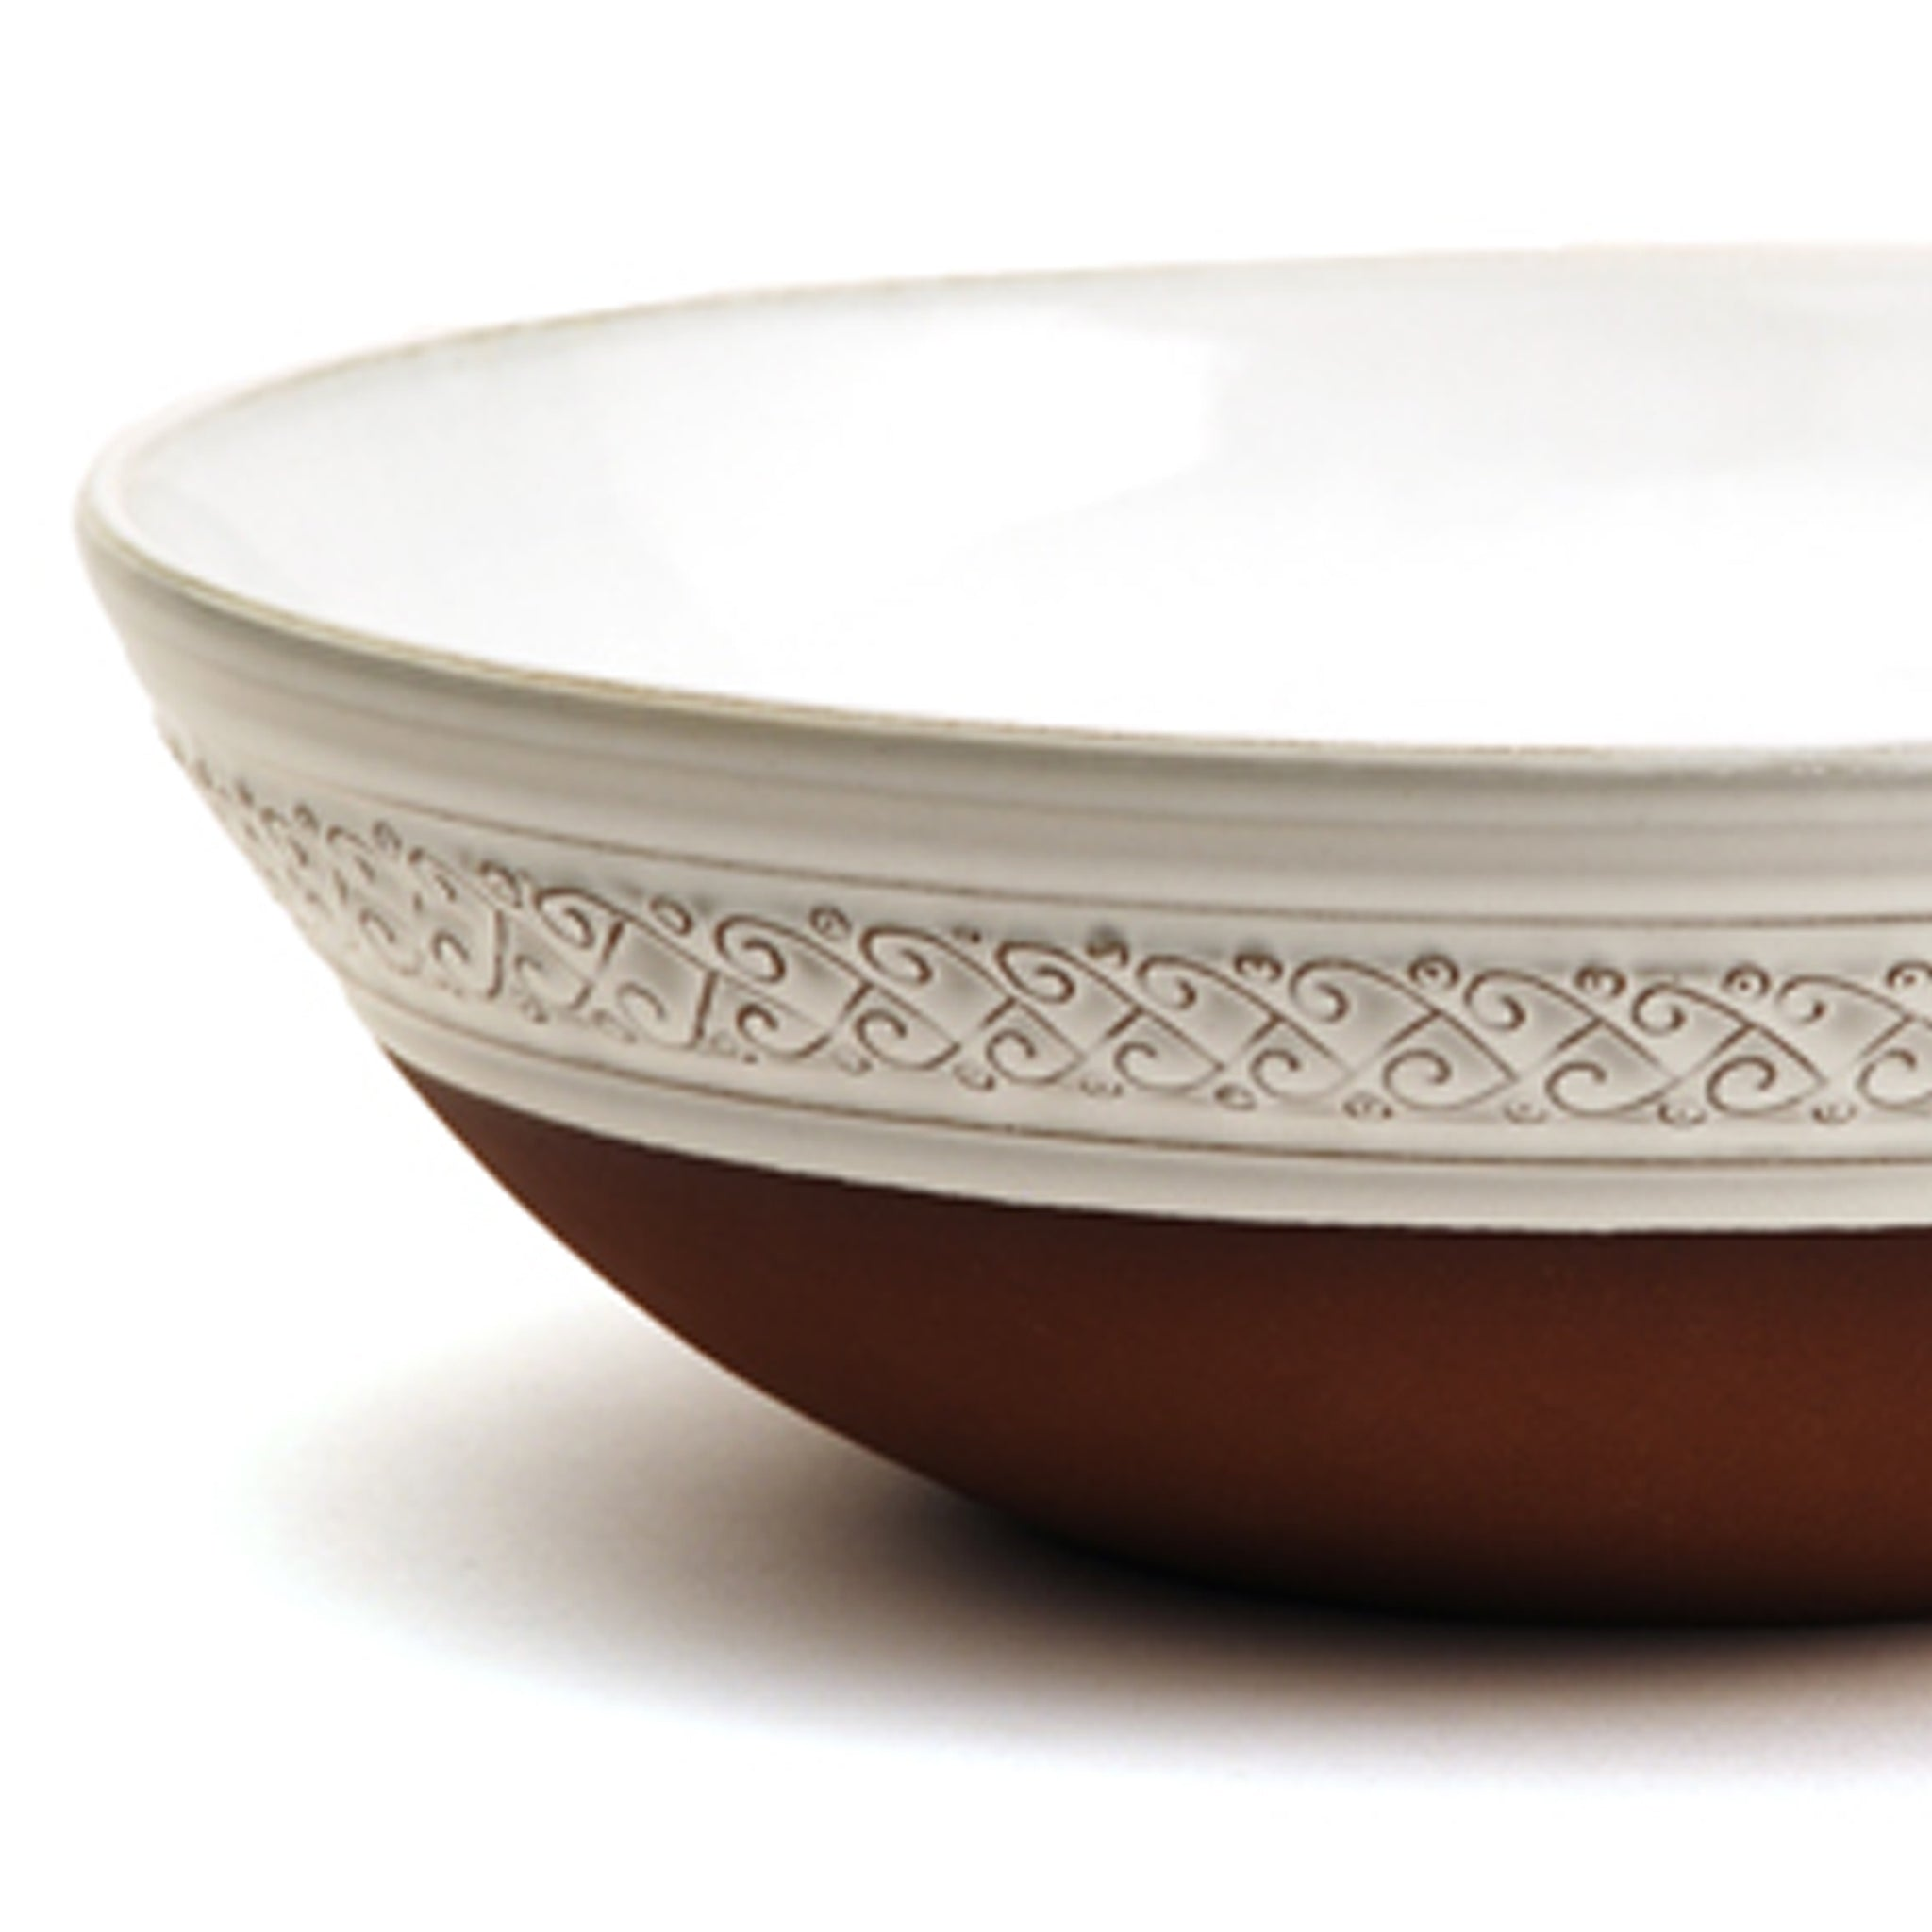 Classic Patterned Bowl Detail